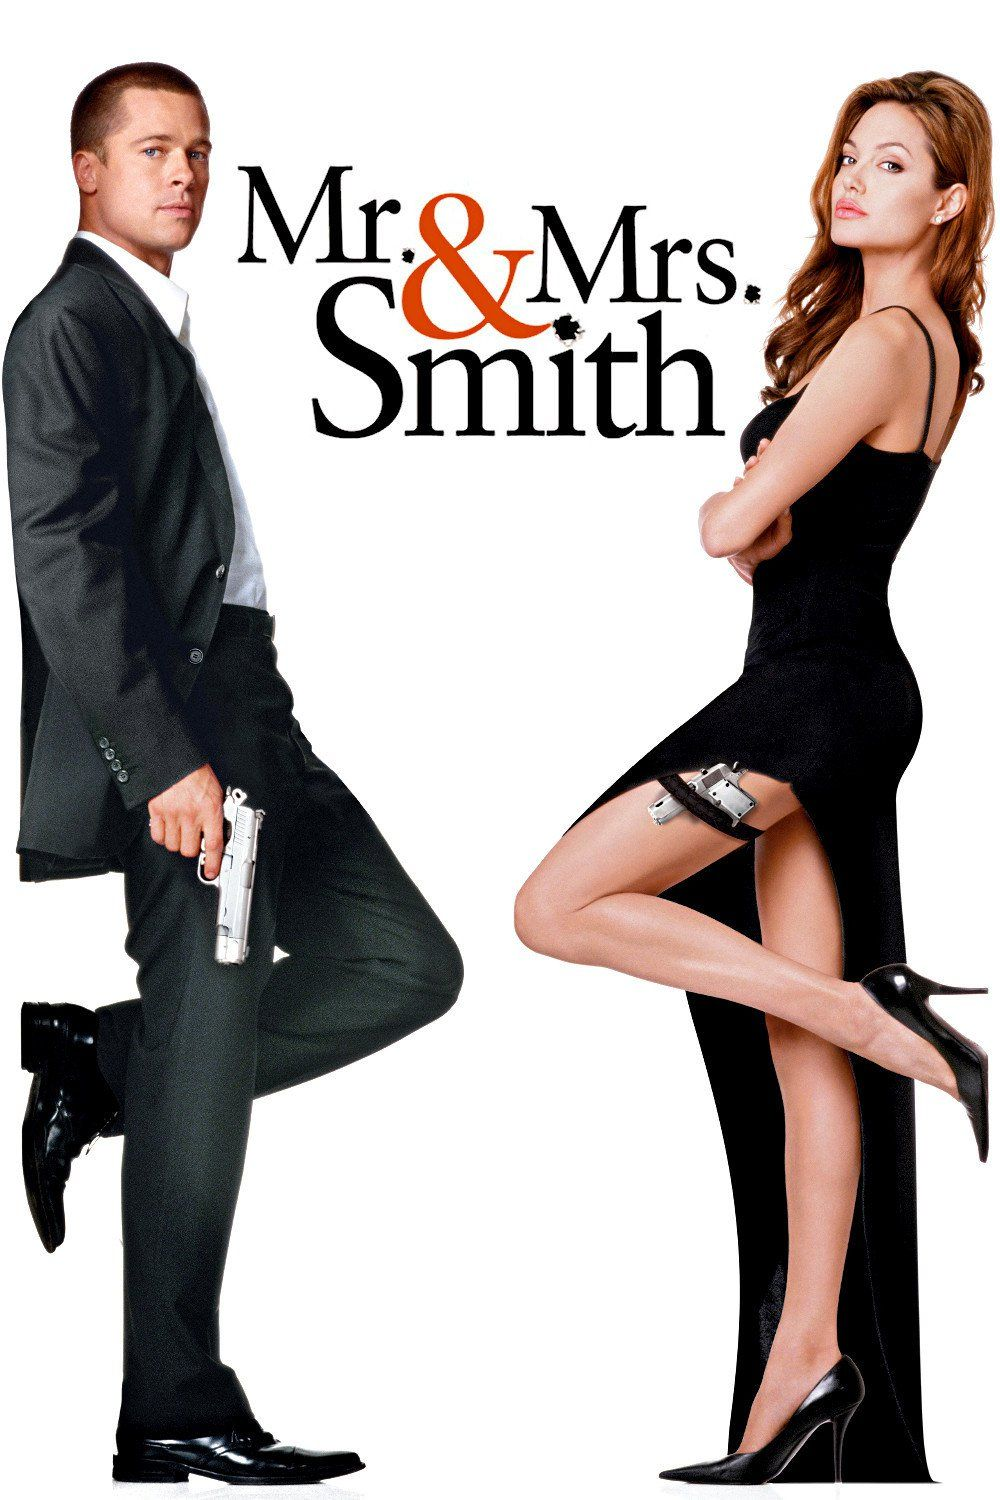 Watch Movie Online Mr Mrs Smith Free Download Full Hd Quality Streaming Movies Streaming Movies Online Full Movies Online Free